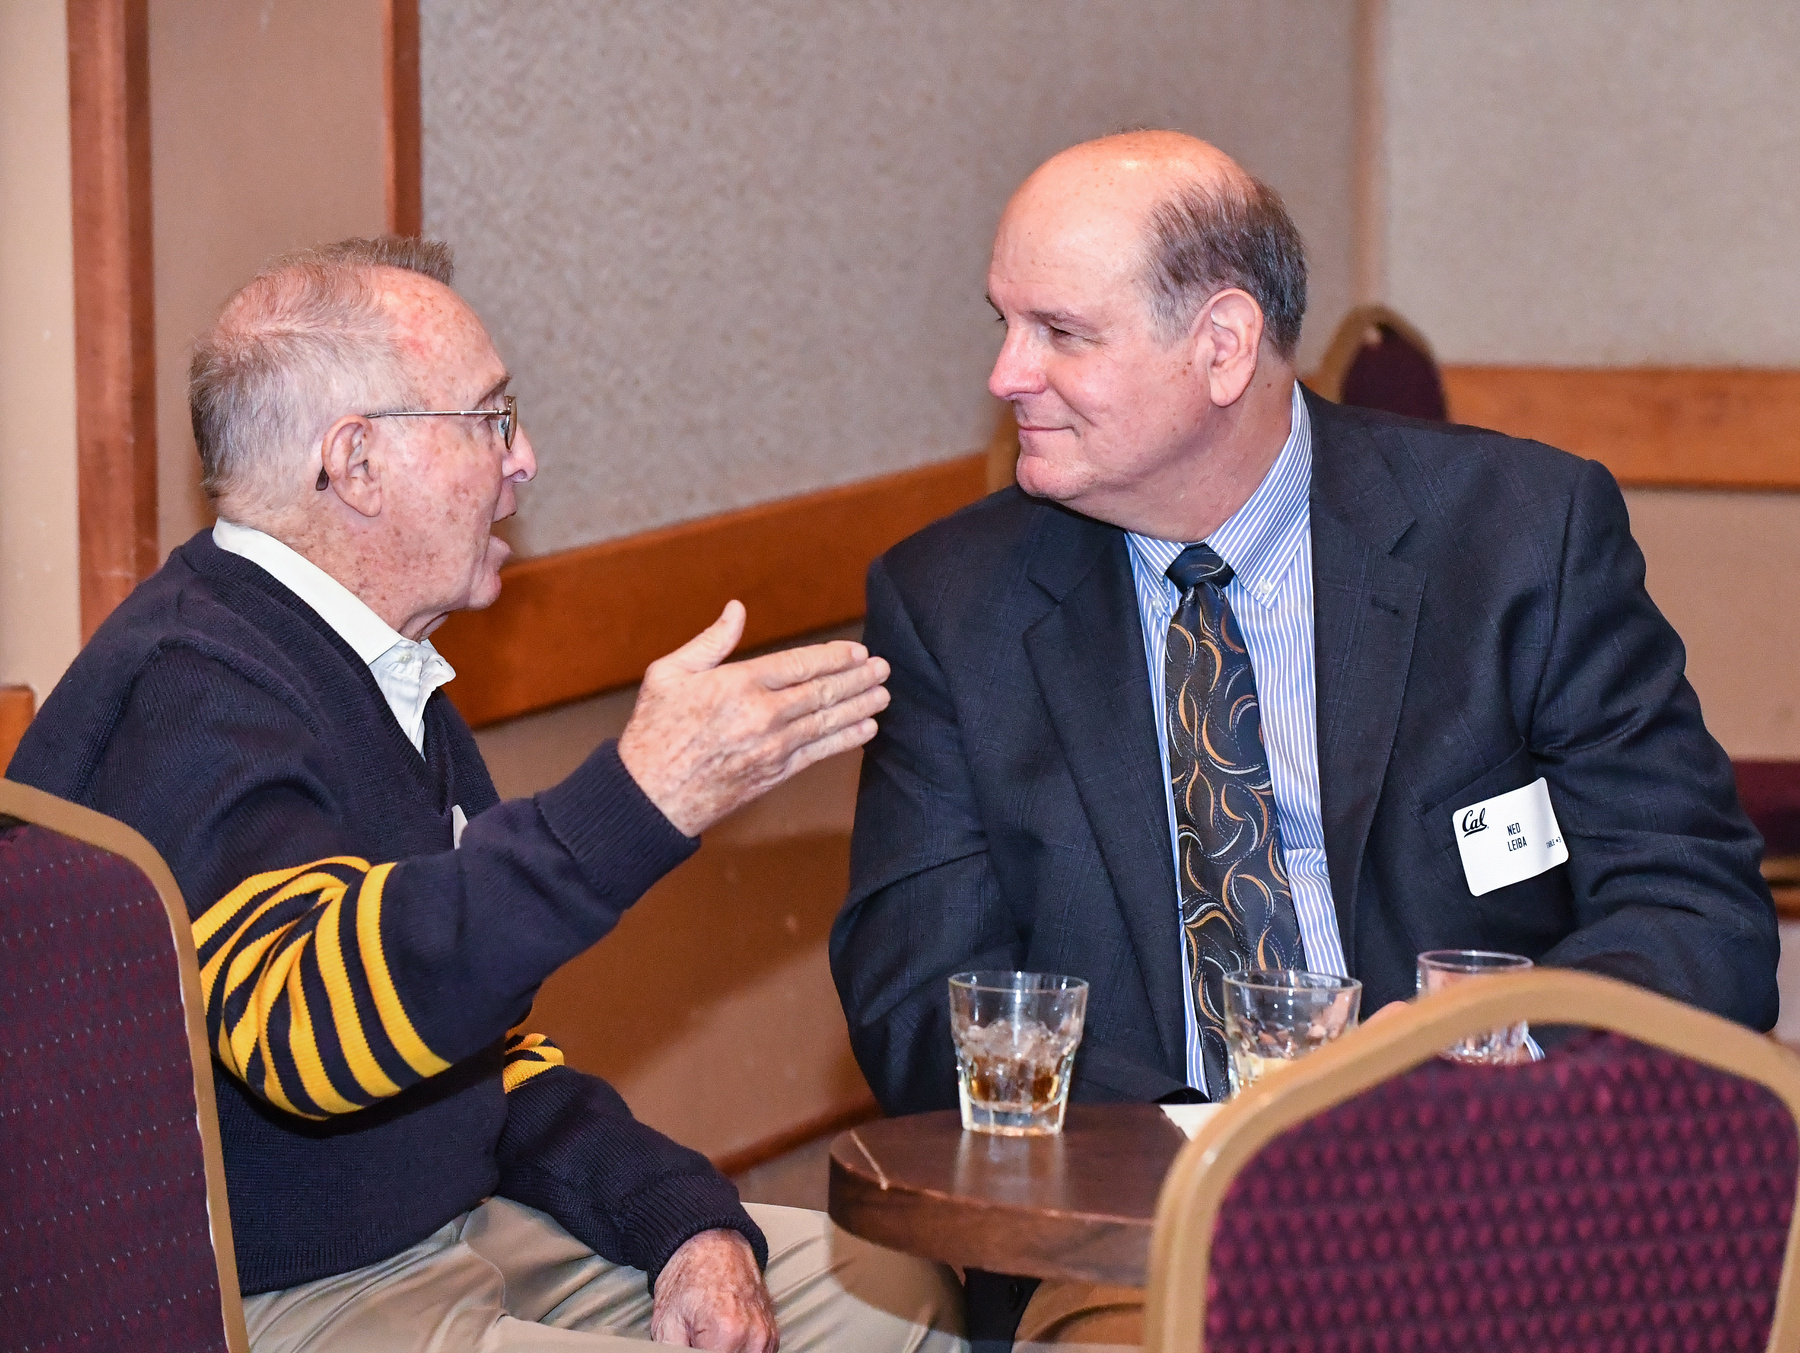 2018 Cal Hall of Fame ceremony _20181026_180210_MarcusE-(ZF-0861-35620-1-033).jpg